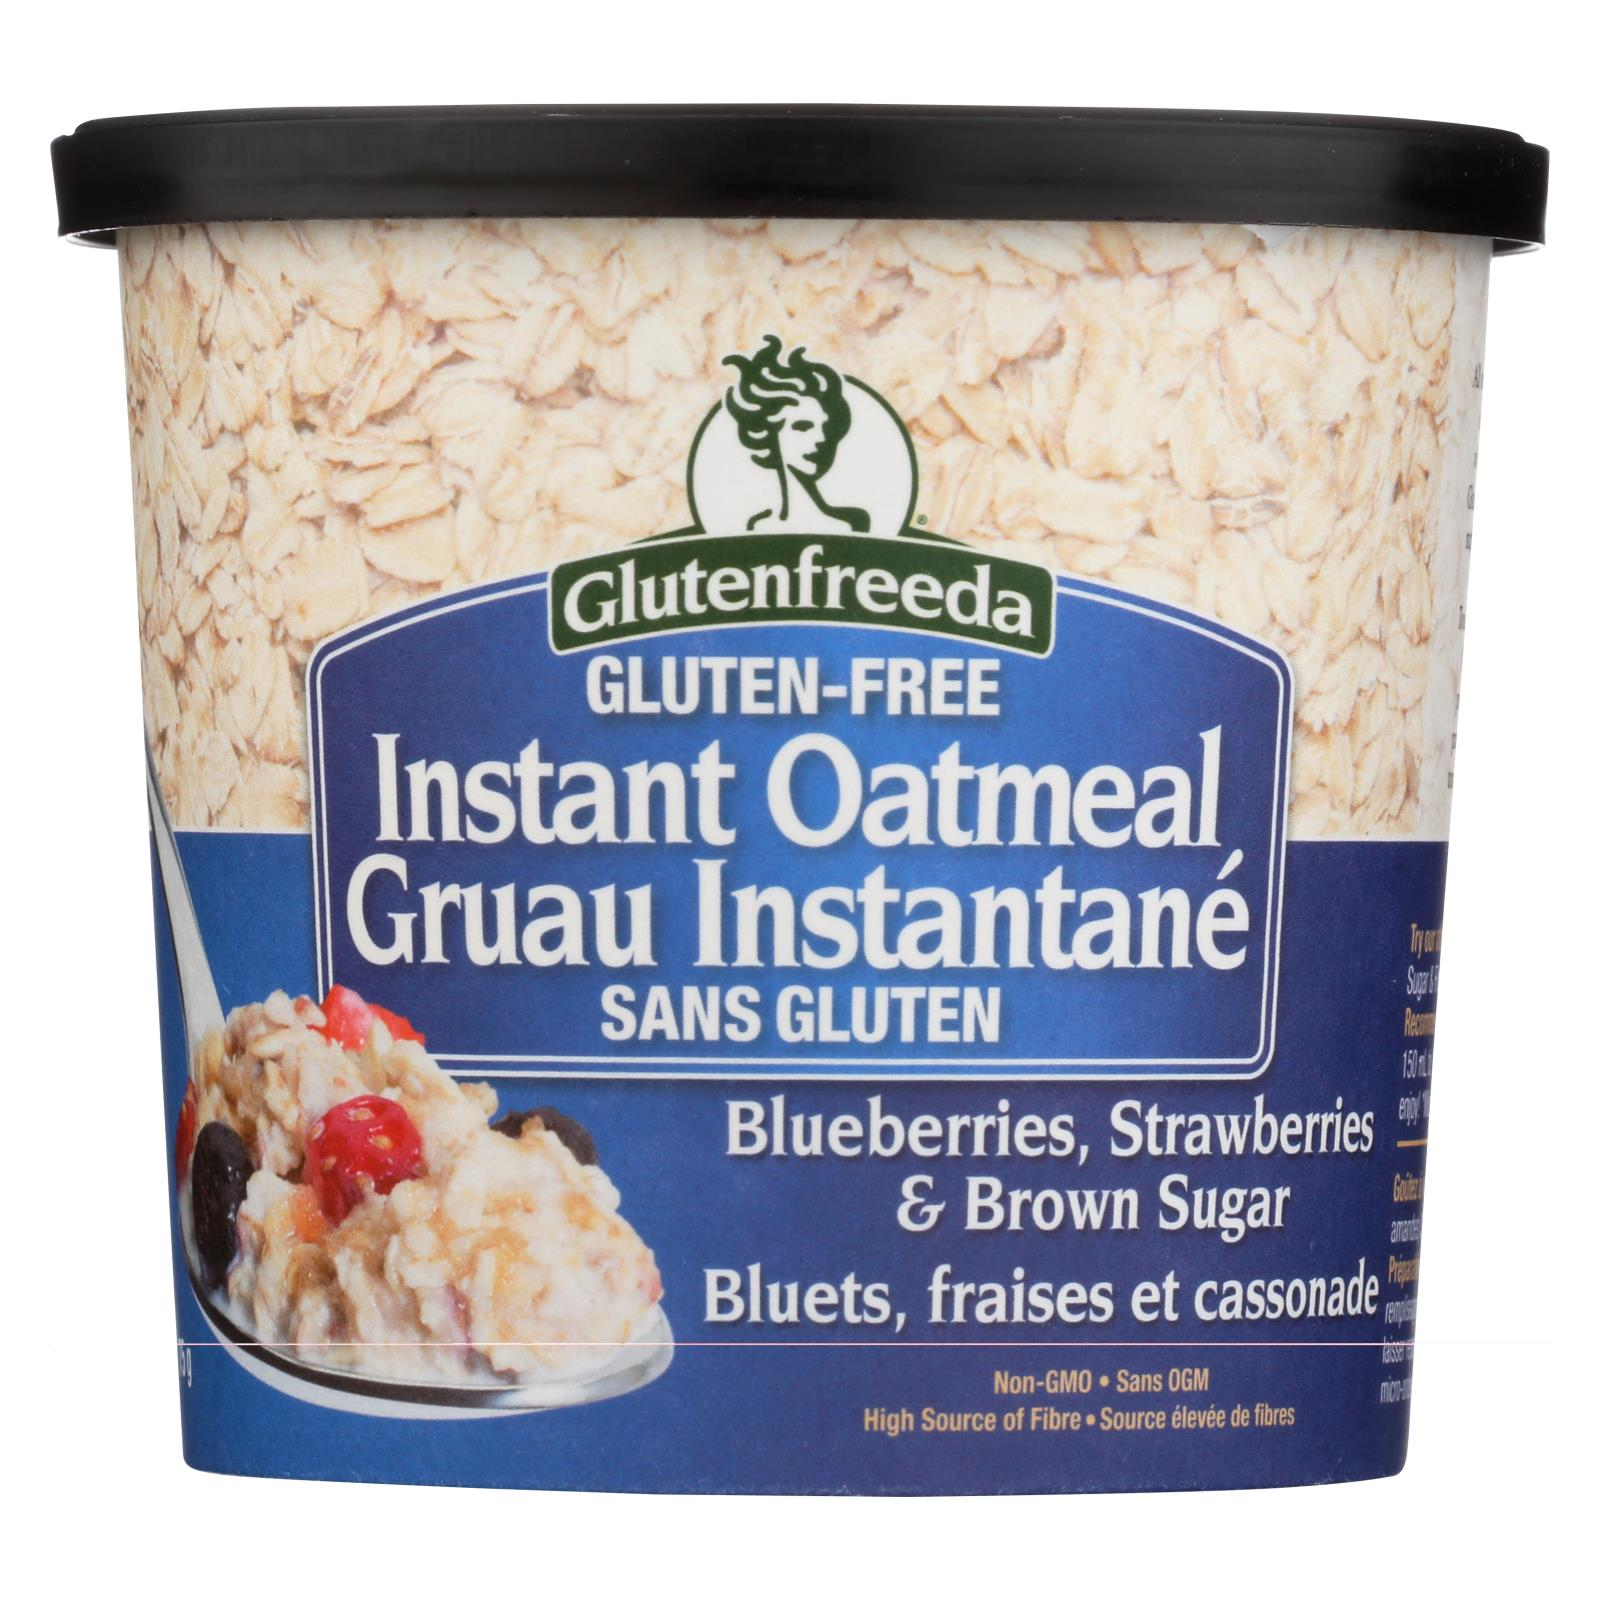 Gluten Freeda Instant Oatmeal Cup - Blueberry, Strawberries And Brown Sugar - Case Of 12 - 2.64 Oz. HG1231844